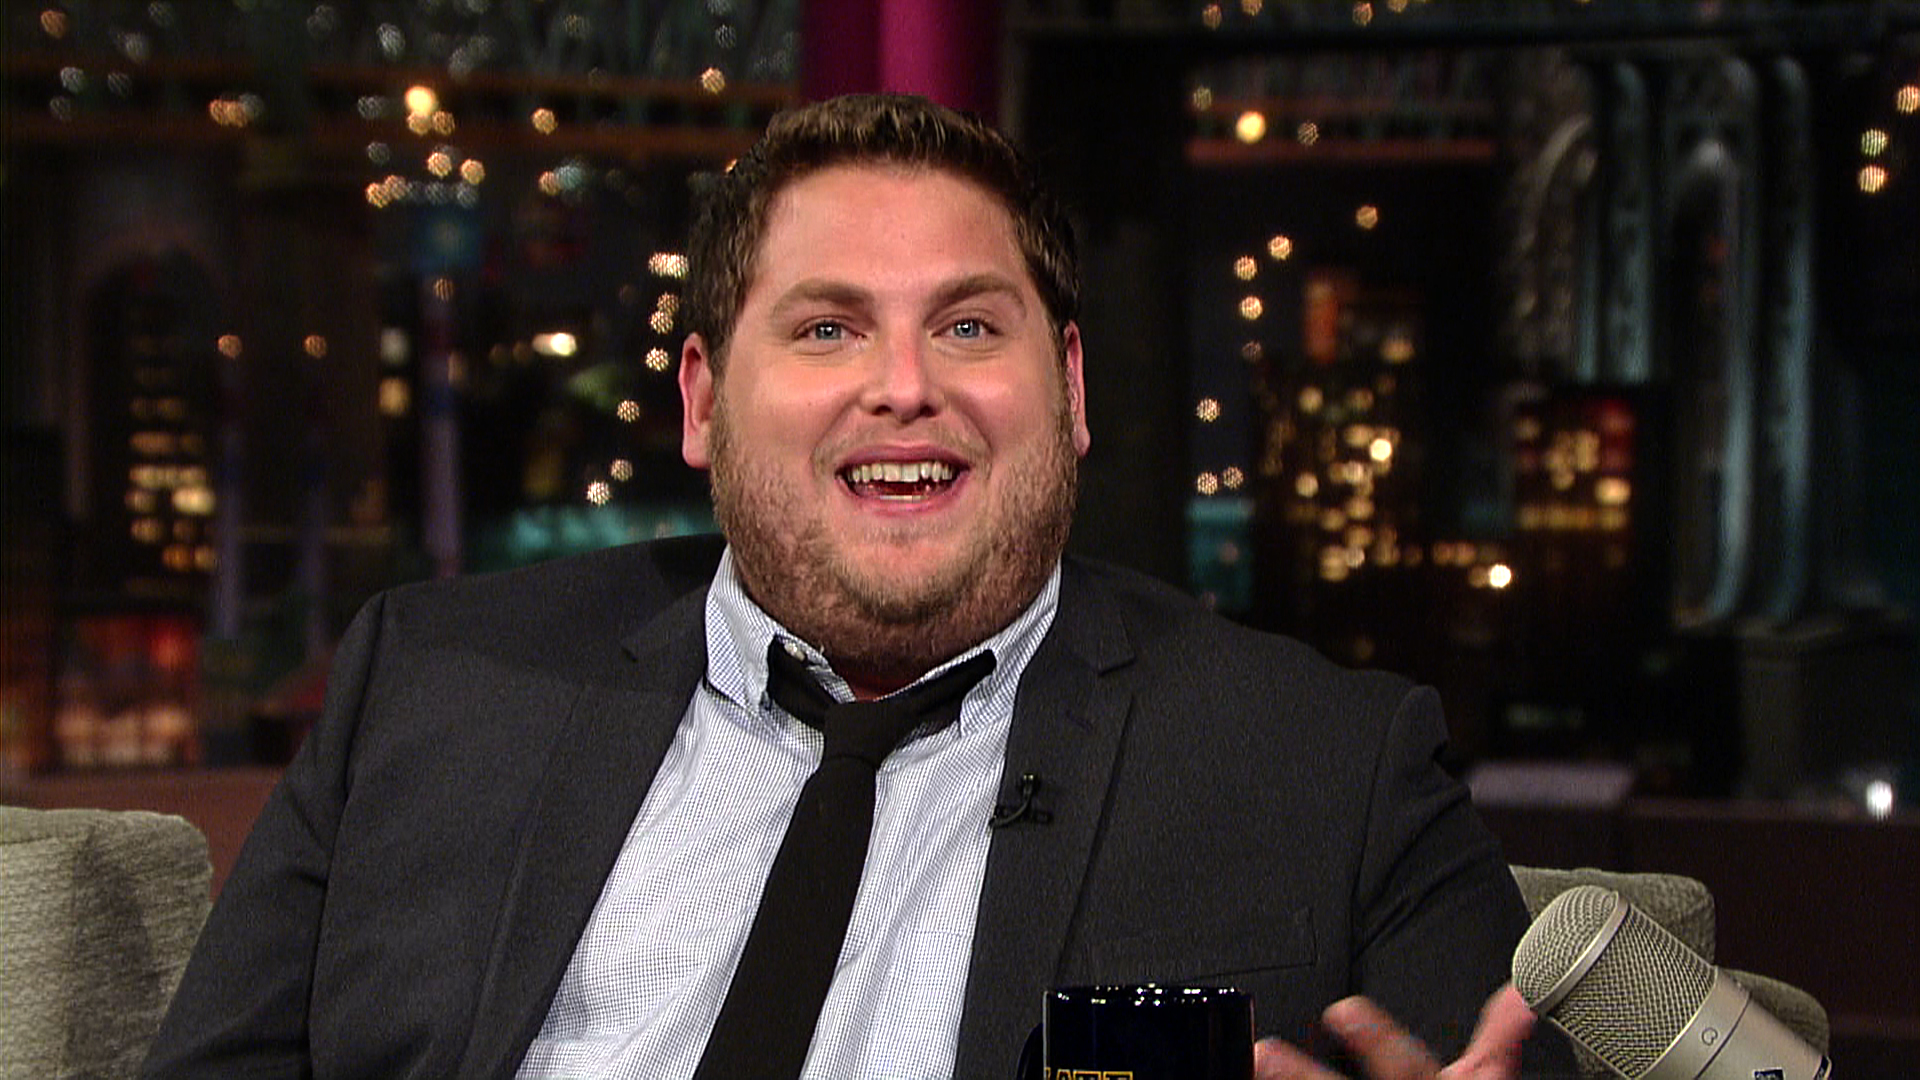 Good for Jonah Hill for rising past his beginnings as the obnoxious, bitingly sarcastic fat kid. He's all set to team up with Mark Wahlberg on an ...